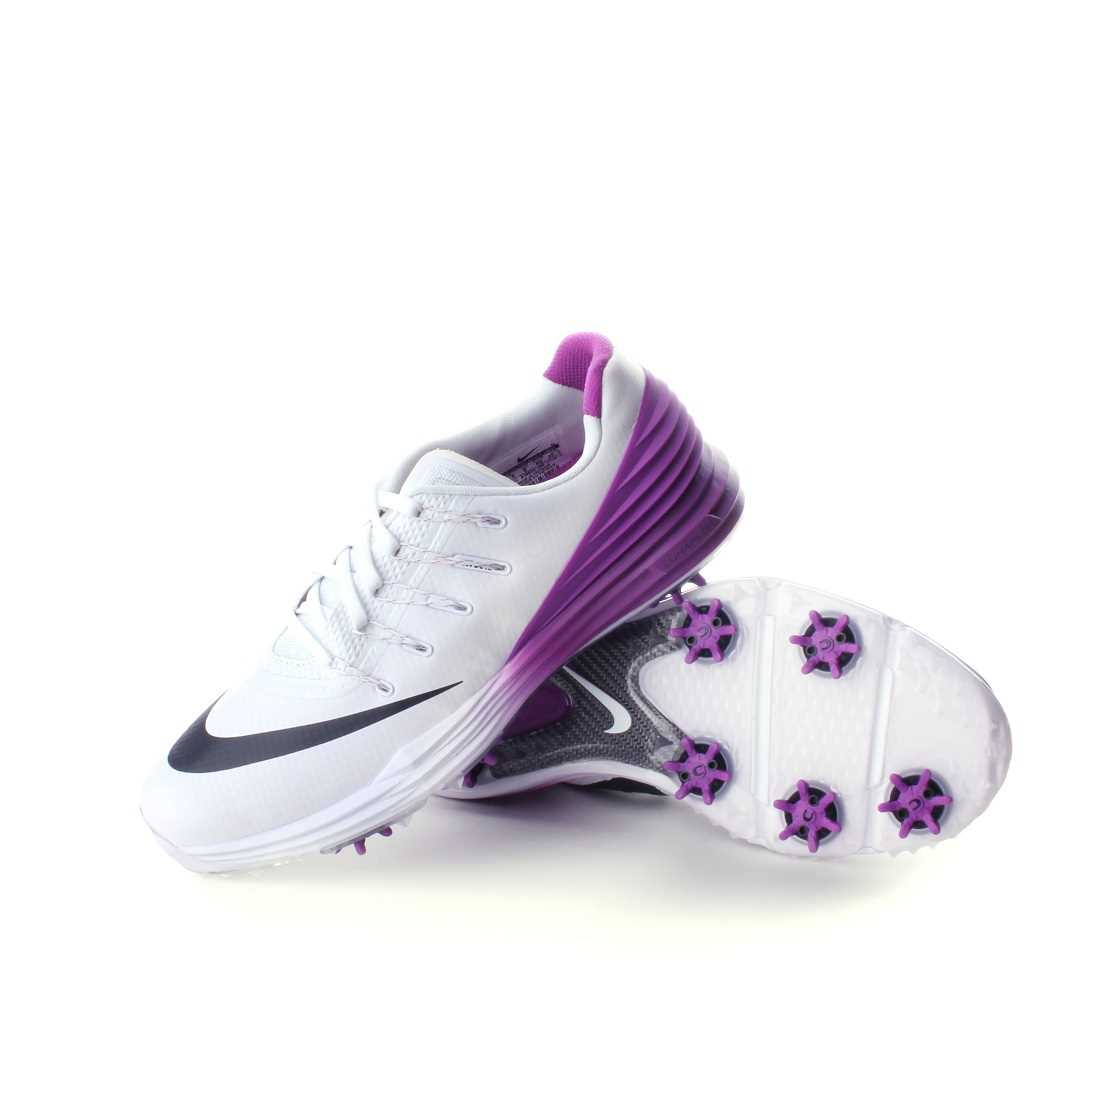 best sneakers 244da 840be Nike Lunar Control 4 Women s Golf Shoe White Cosmic Purple